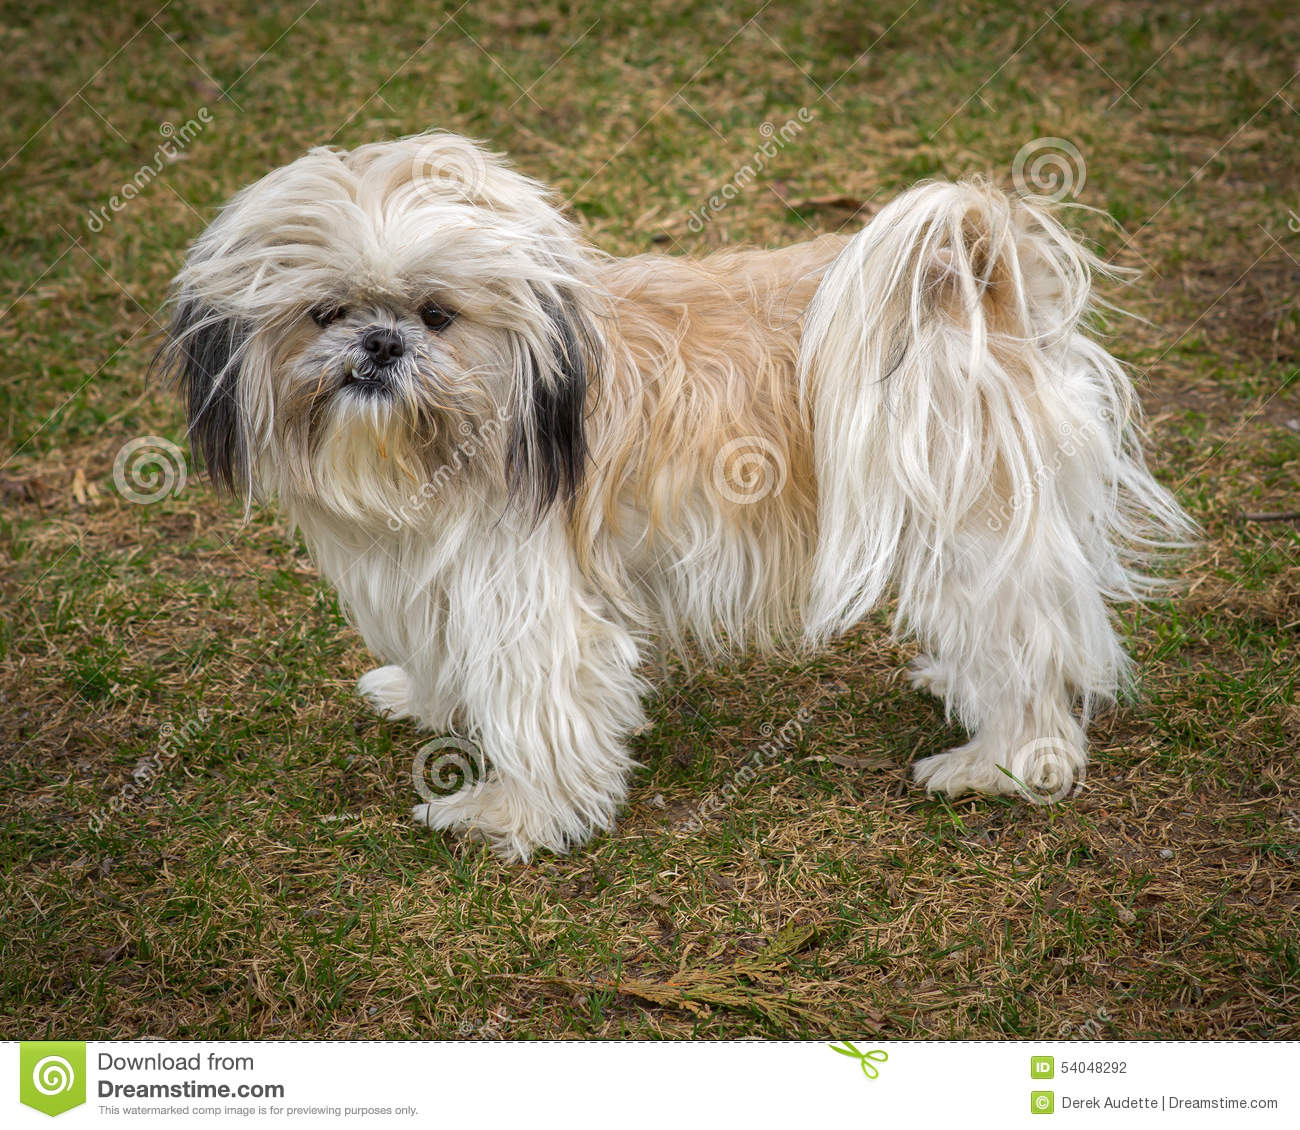 Imperial Shih Tzu Puppies for sale. Chinese